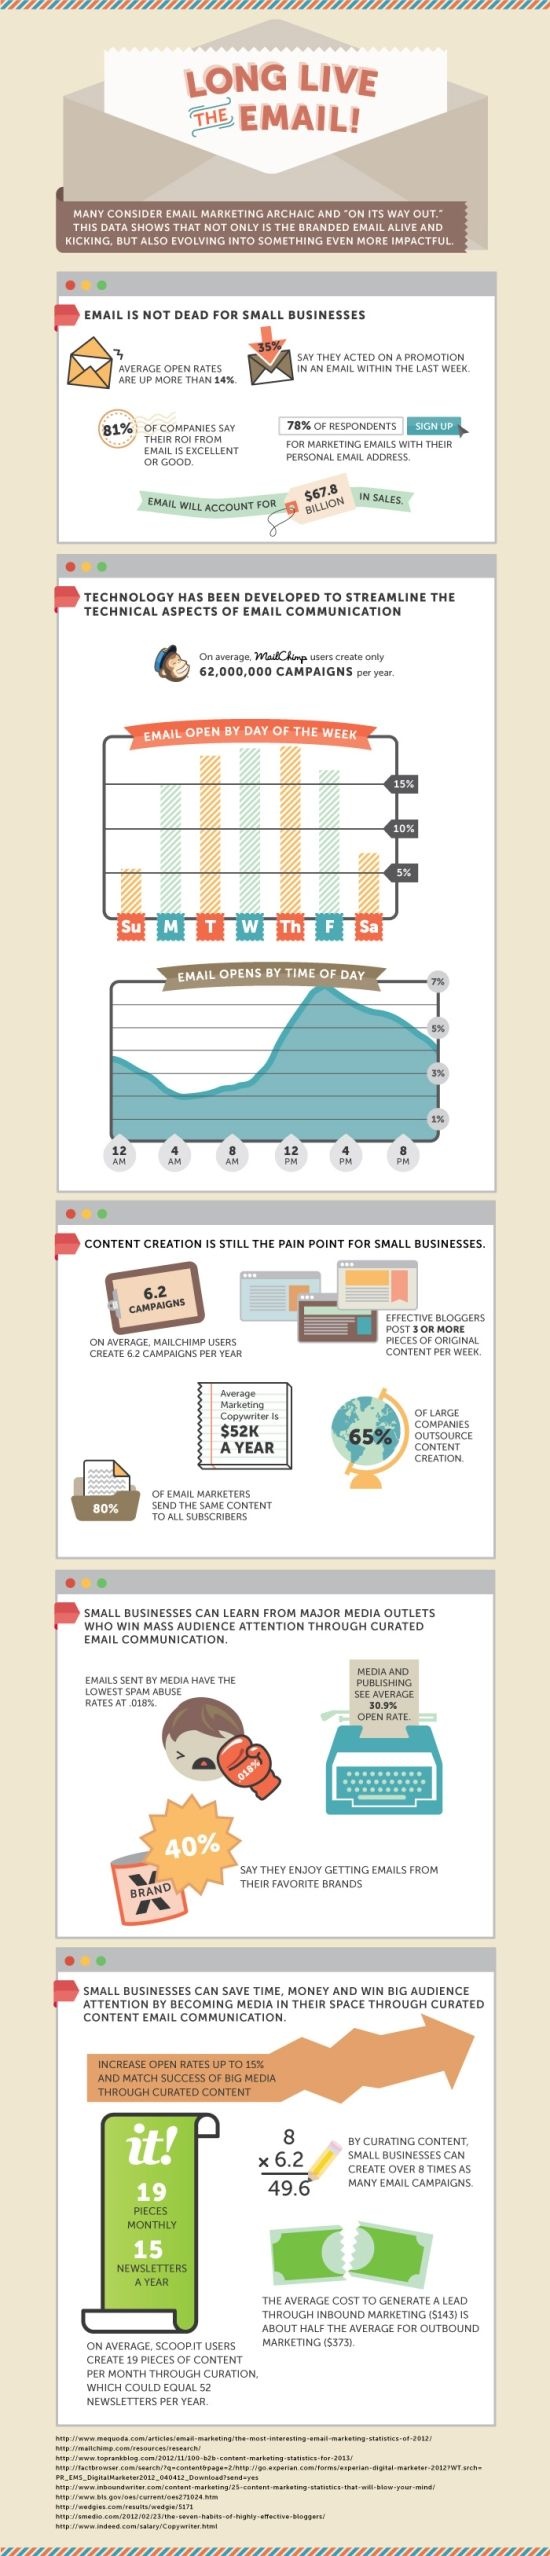 E-mail is springlevend [infographic] | C-Works!